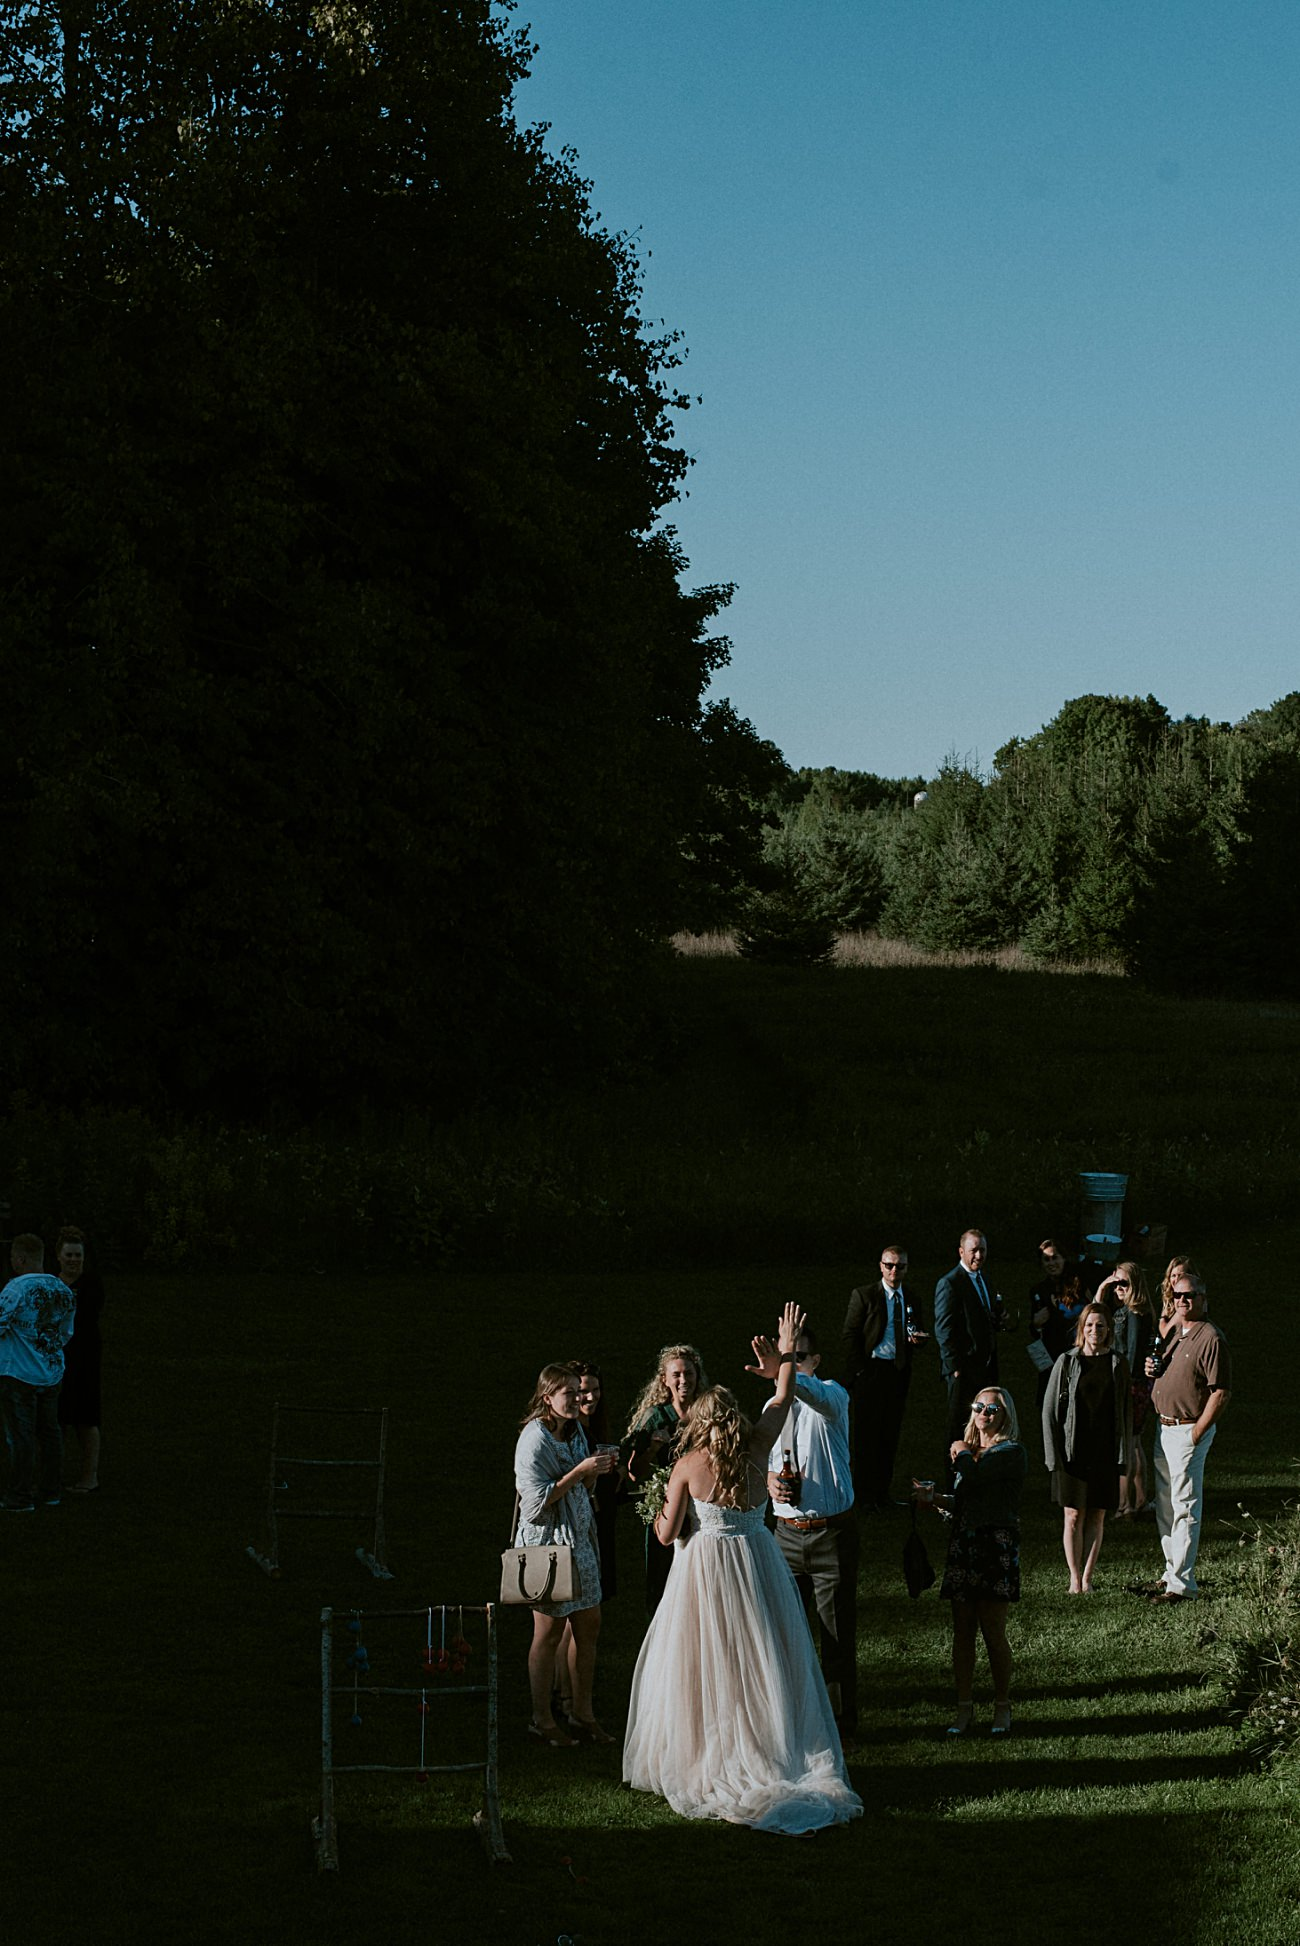 MEGHAN & ALEX | Door County Wisconsin Wedding